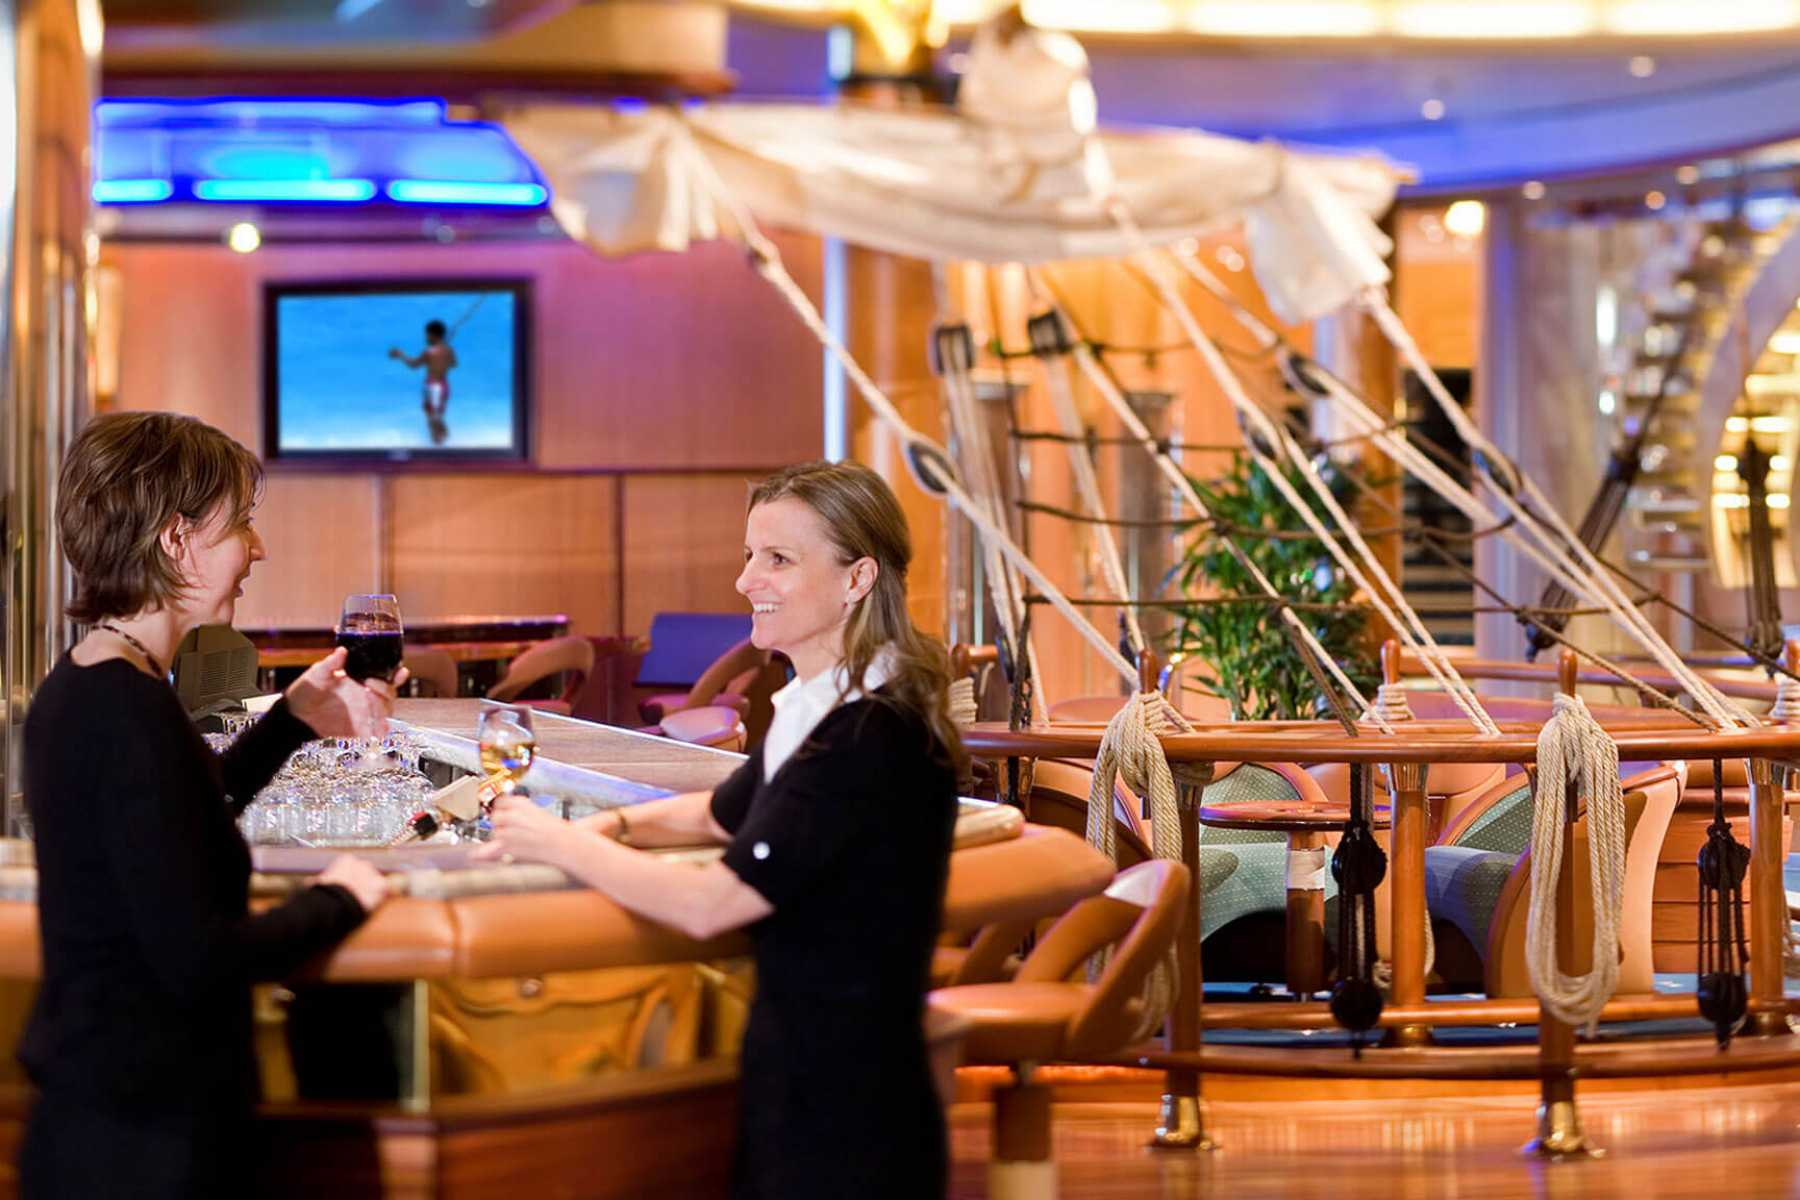 Royal Caribbean Independance of the seas Interior new schooner bar.jpg